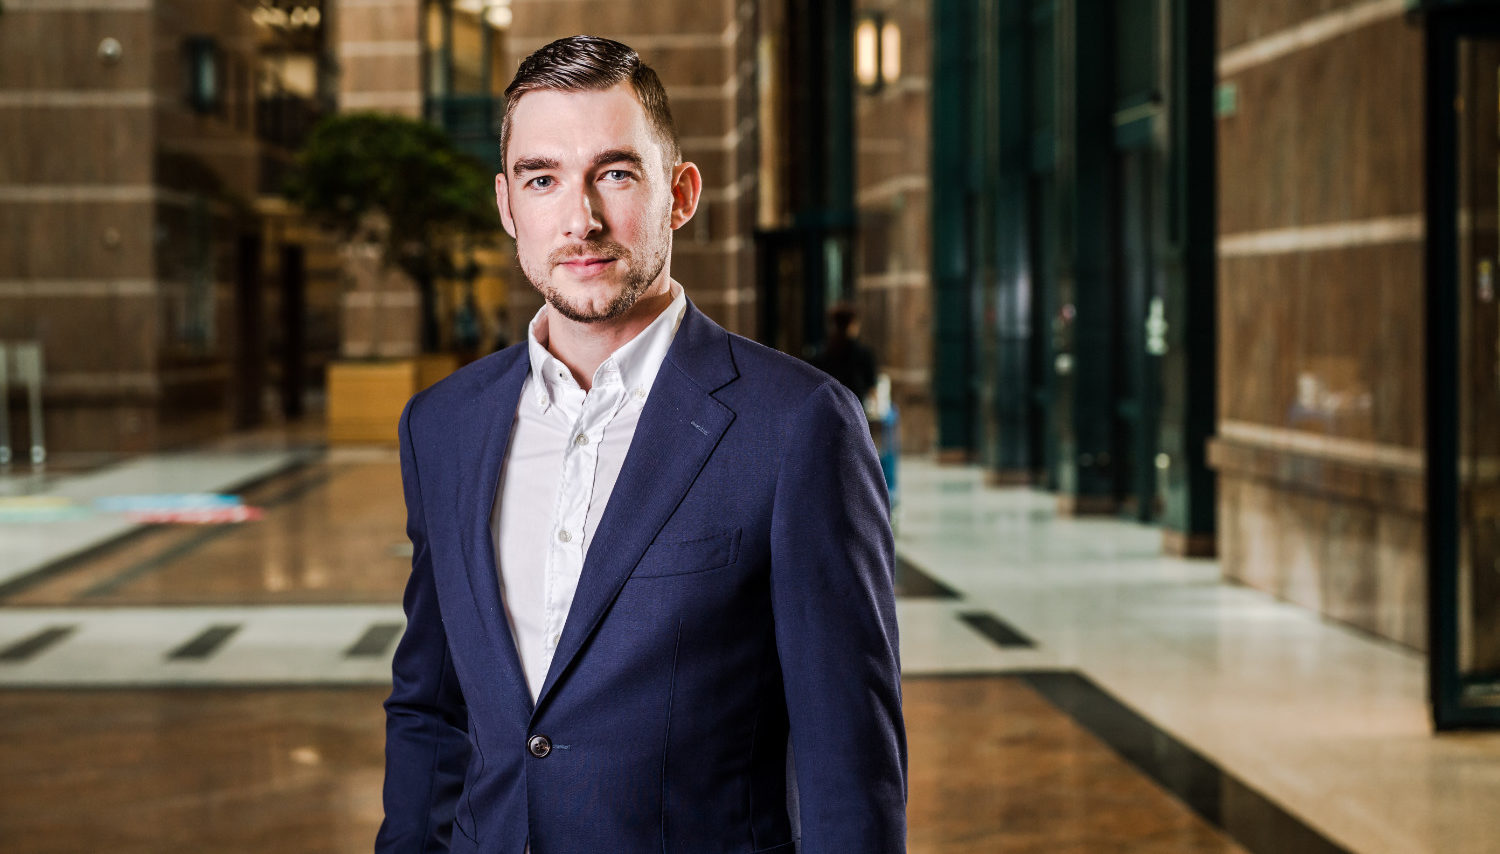 Joeri Wouters: On the millennial trader | The DESK - Fixed Income